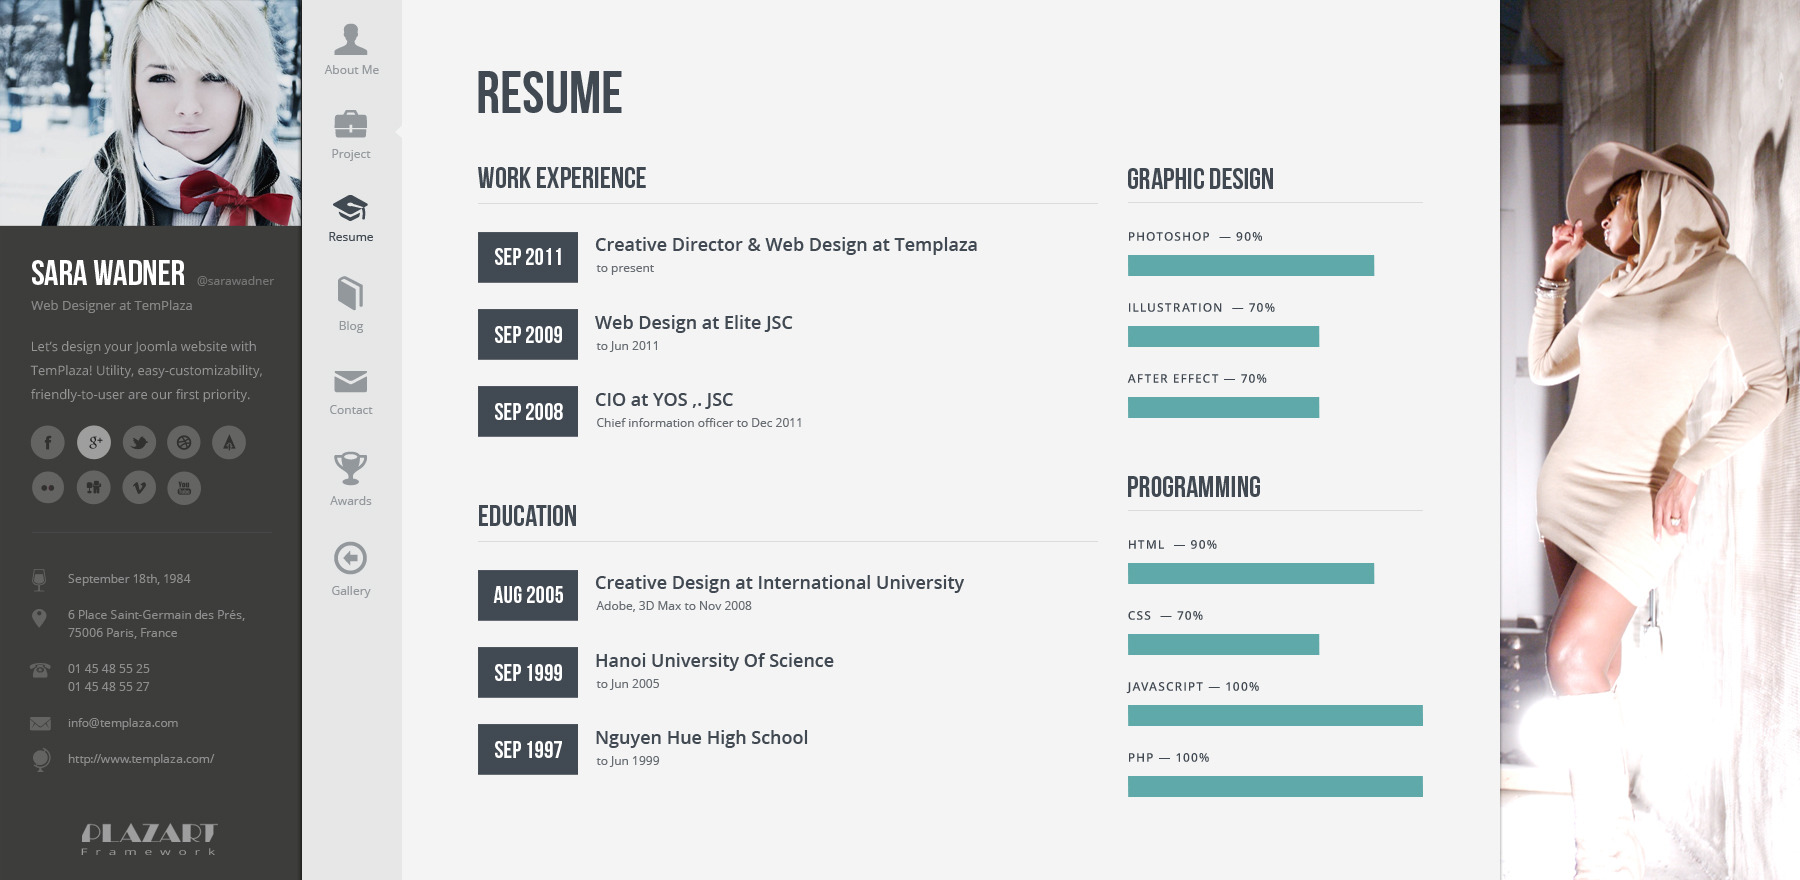 wordpress resume template profiler vcard resume joomla template by templaza themeforest 07 profiler resume jpg - Wordpress Resume Template